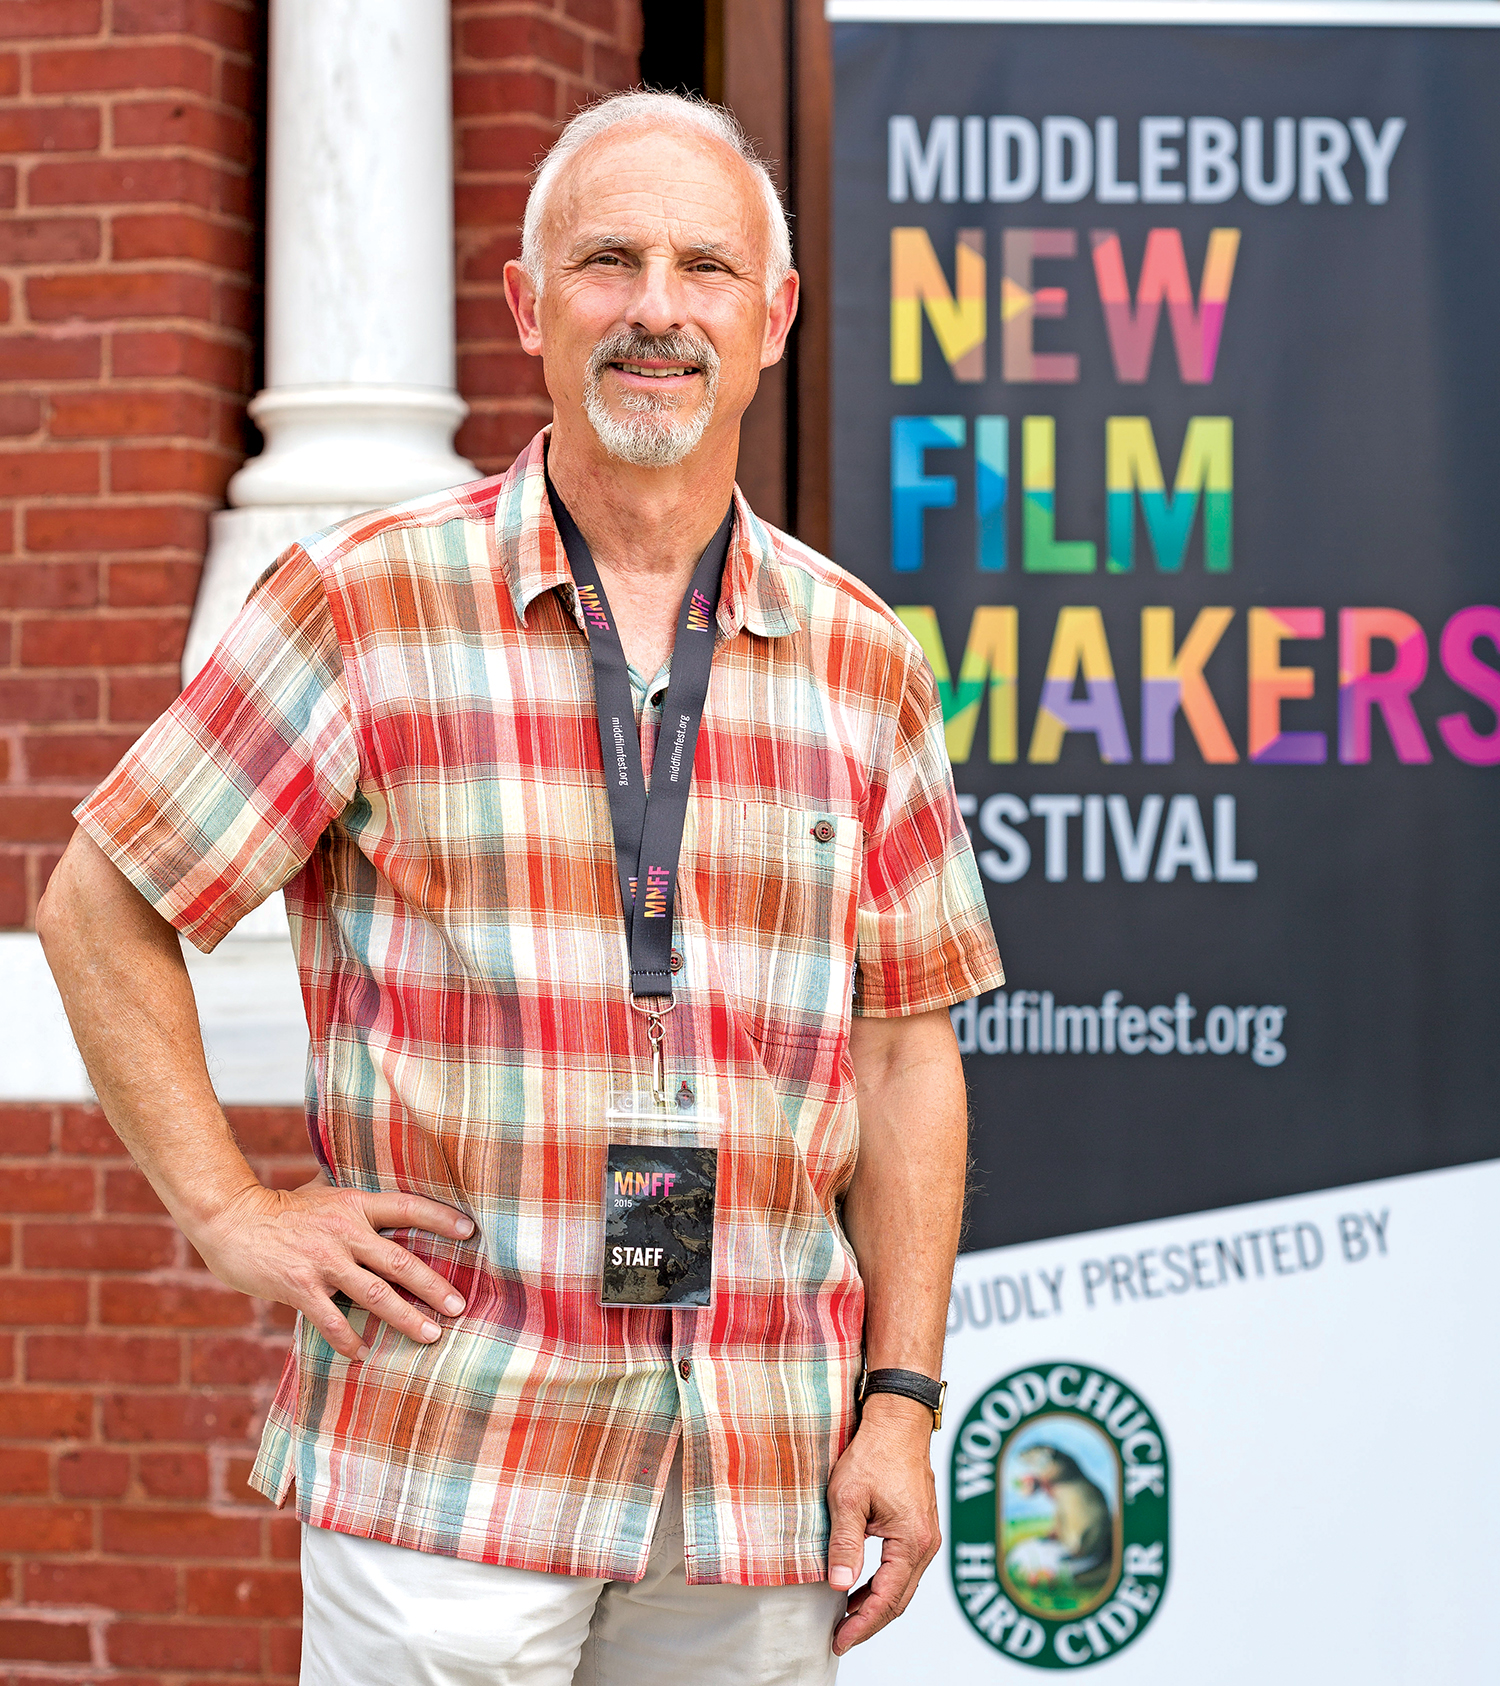 Lloyd Komesar '74 created a new film festival for first- or second-time filmmakers and attracted a strong contingent of Wesleyan alumni as participants. Photo: Oliver Parini.